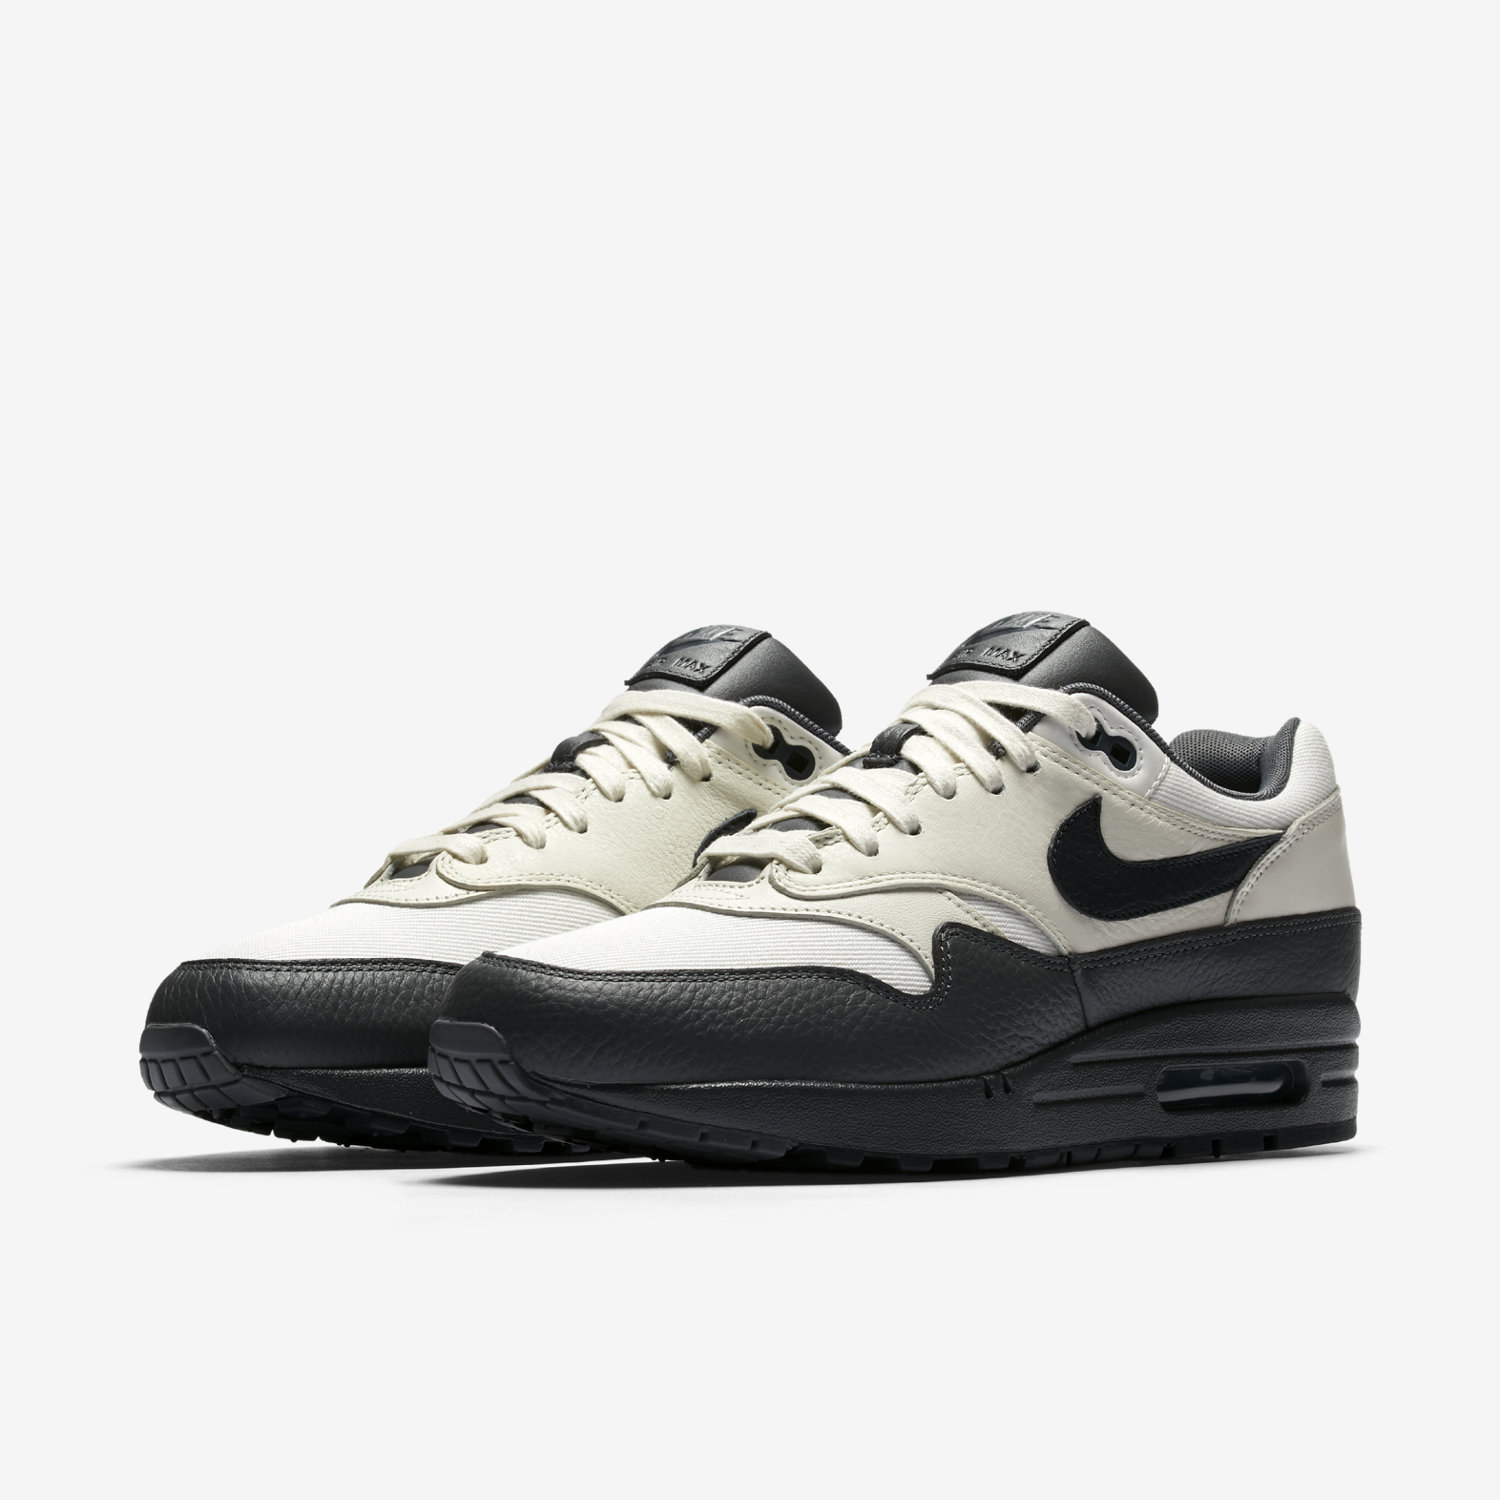 nike air max 1 premium sneakers mens health network. Black Bedroom Furniture Sets. Home Design Ideas